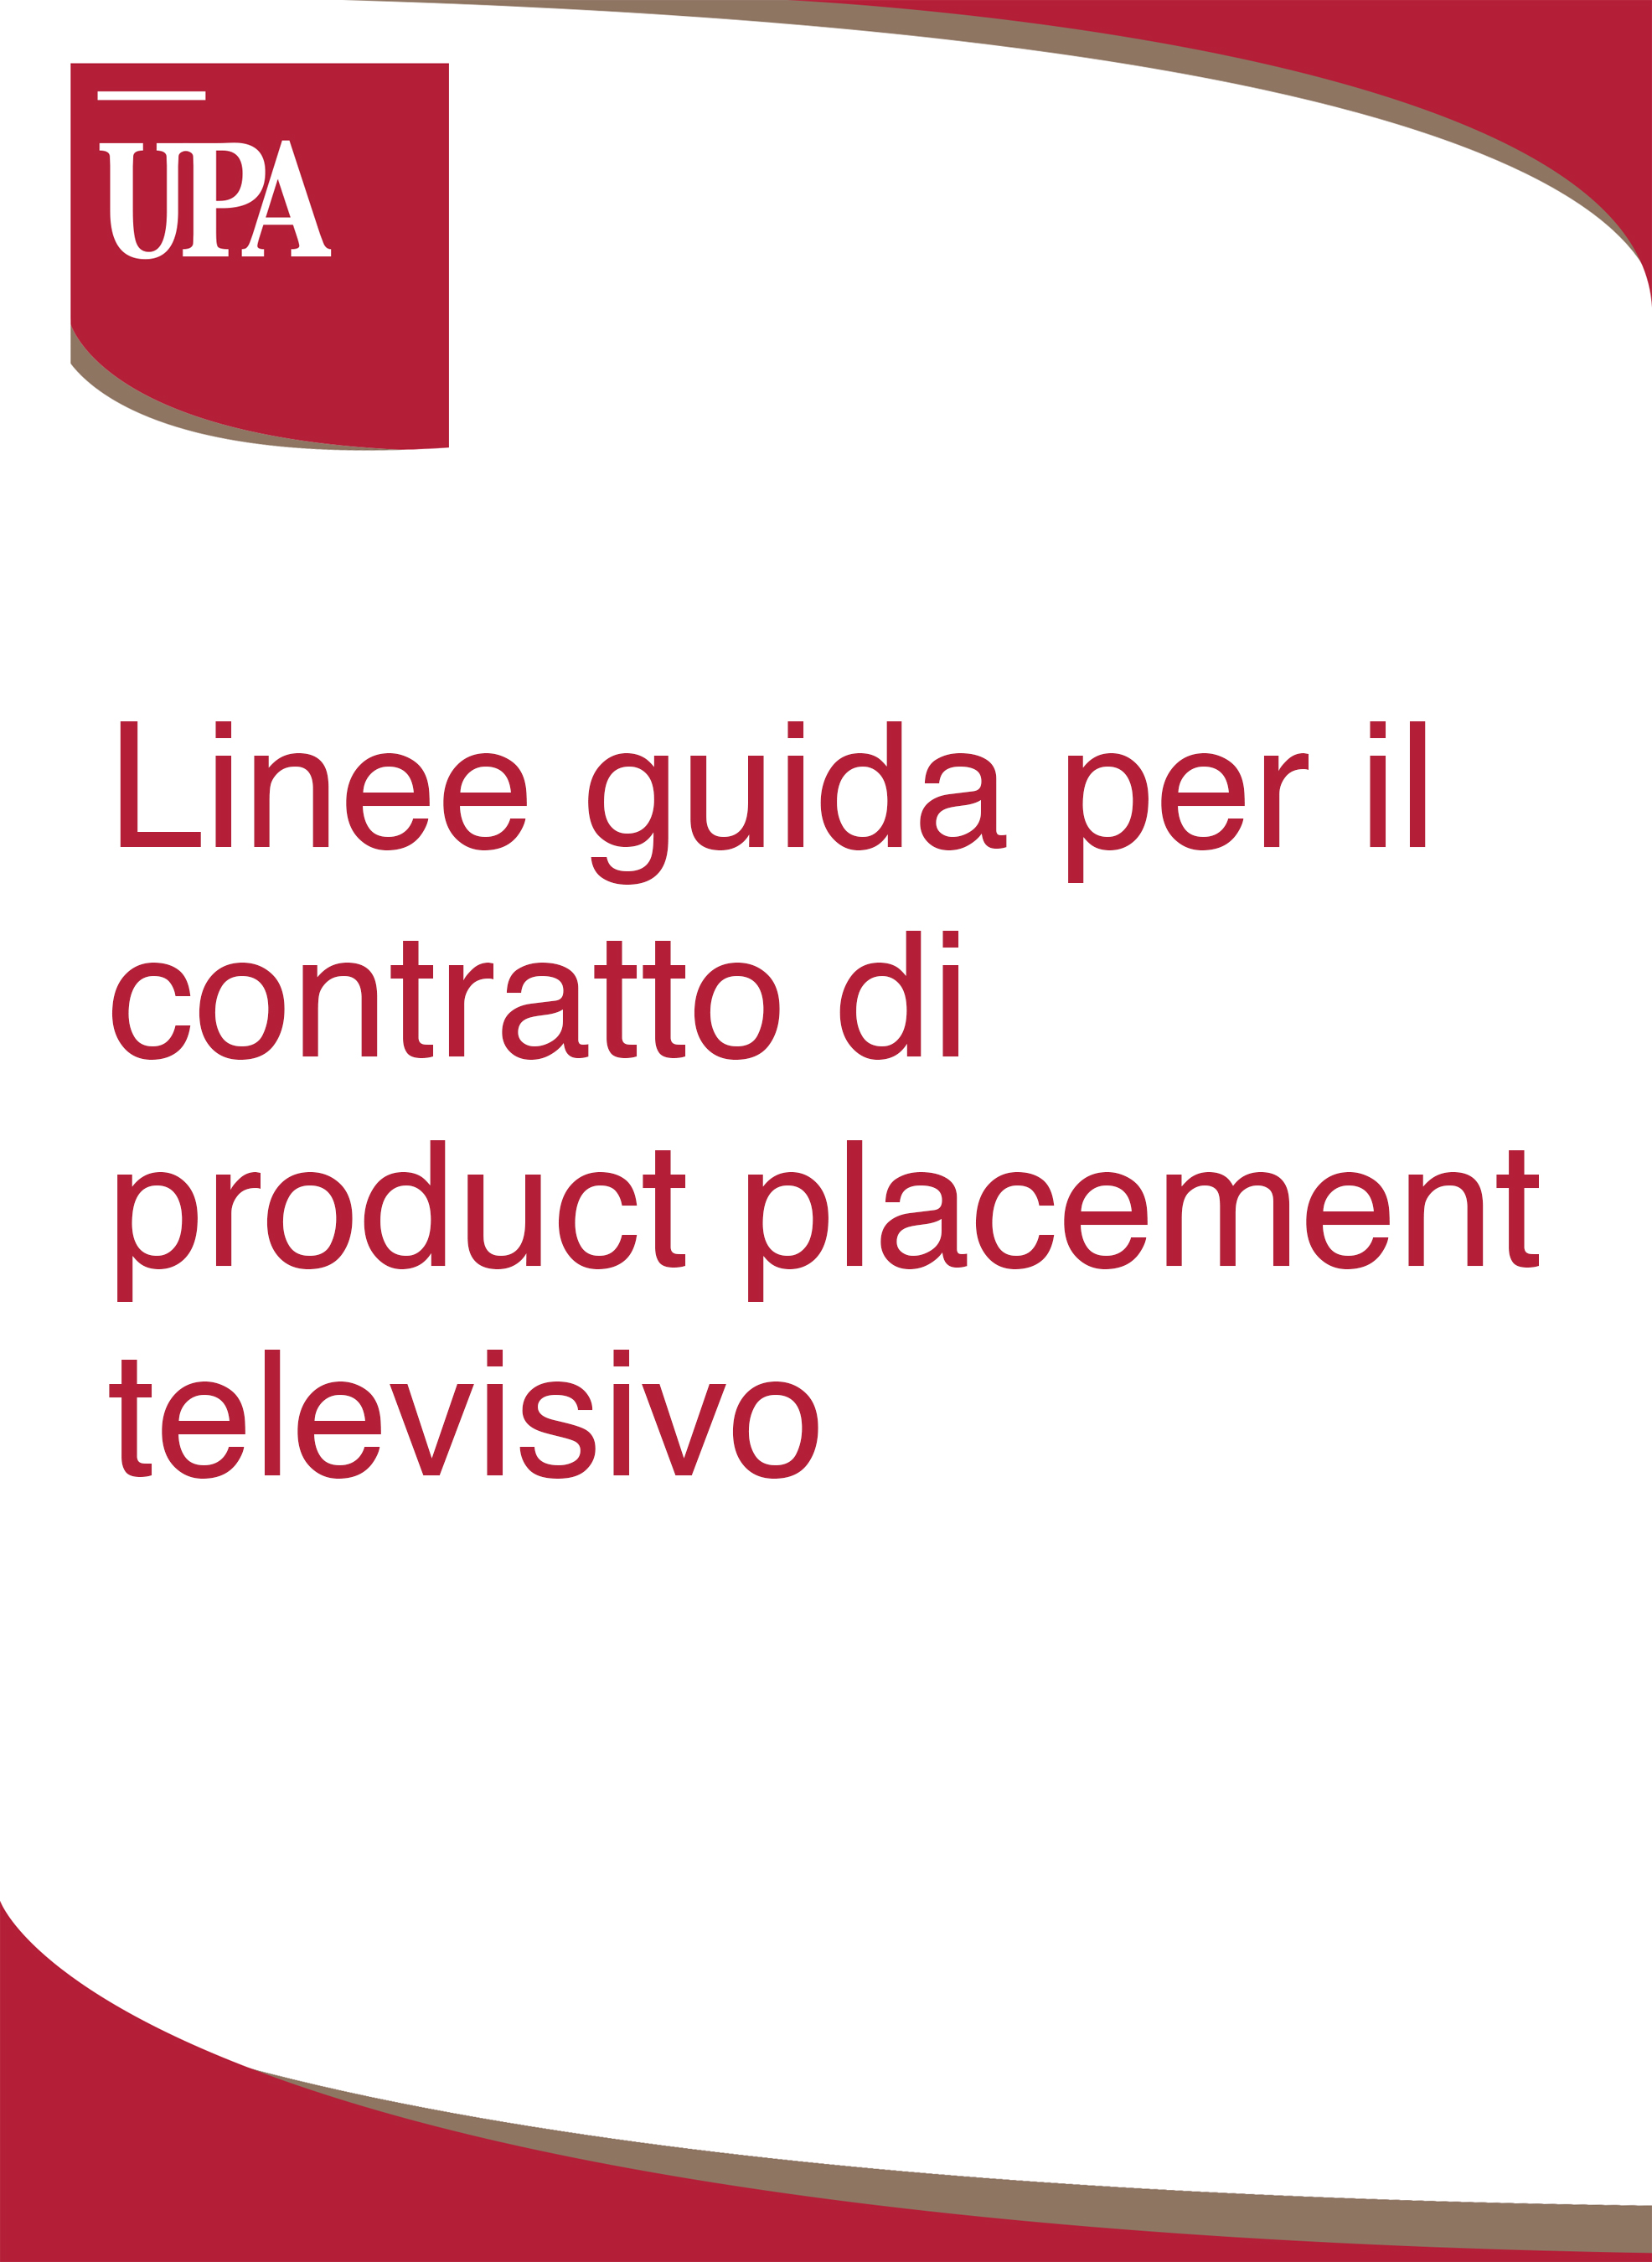 linee guida product placement